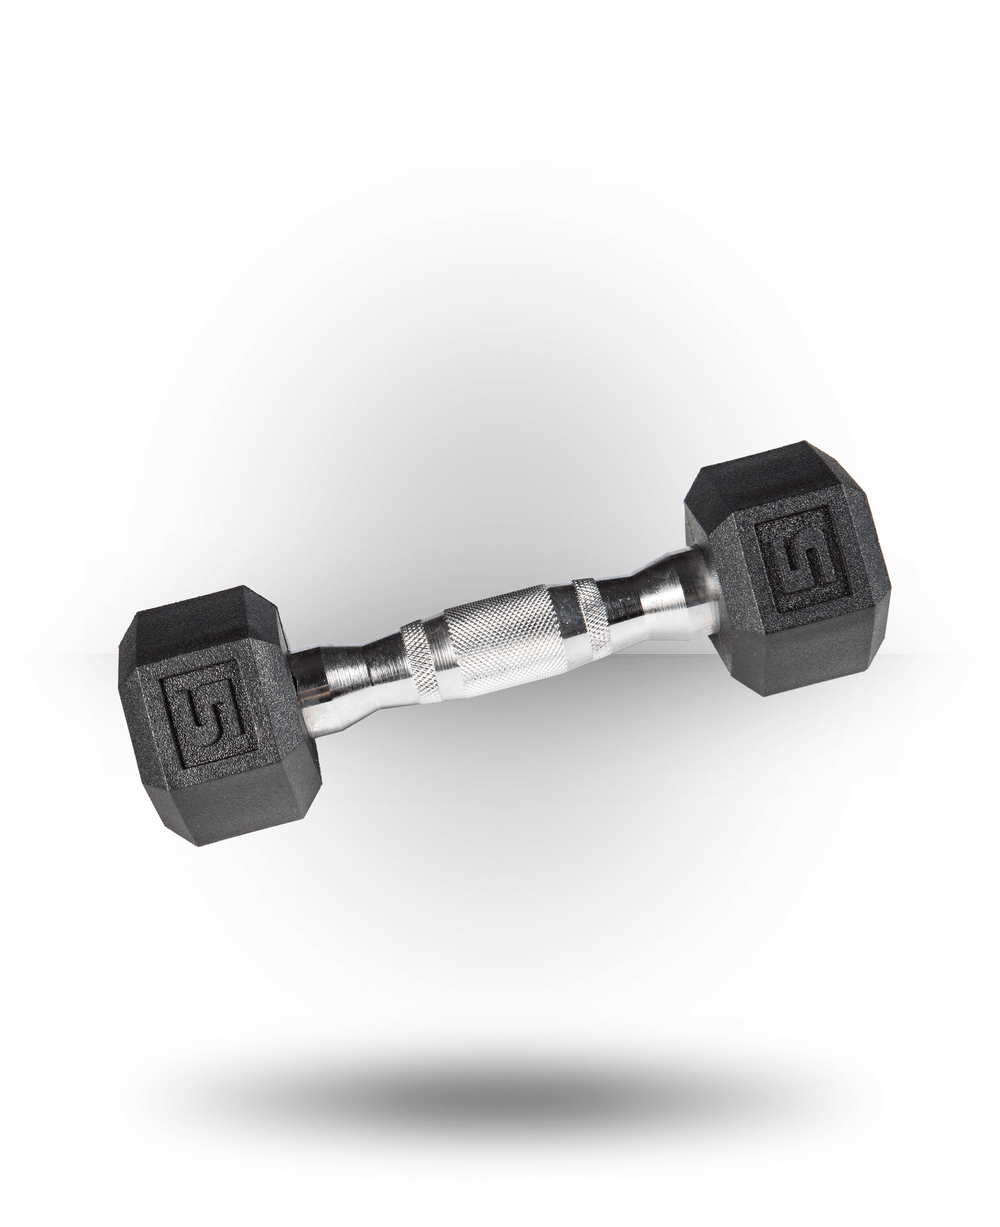 York Barbell PVC Hex Dumbbell With Chrome Ergo Handle 5 lb